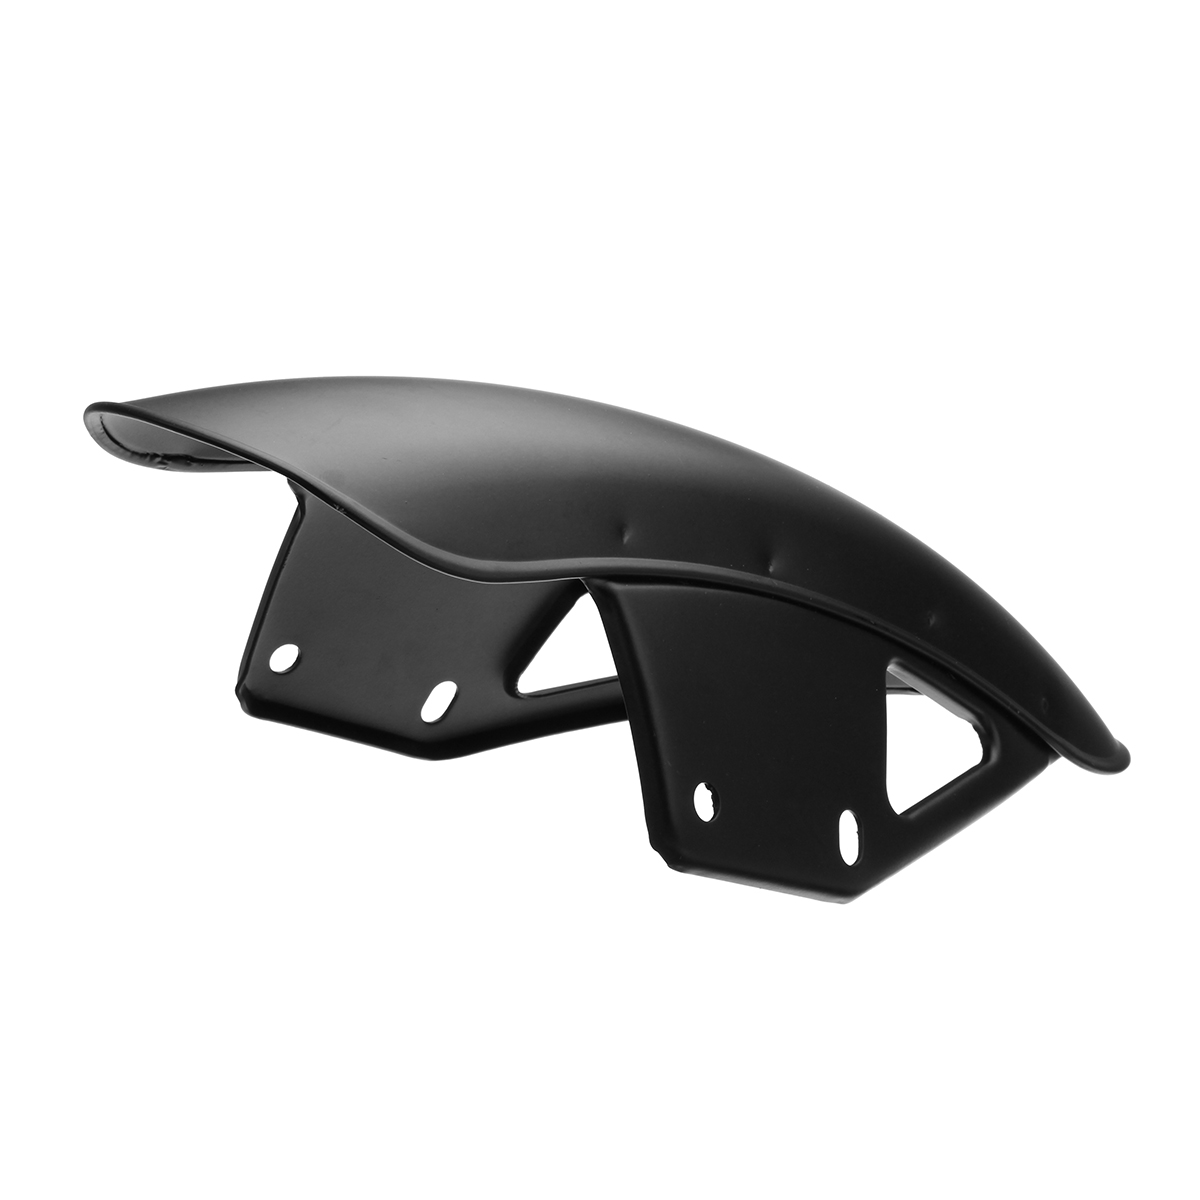 Motorcycle Front-Fender Mudguard Fairing Cover For Suzuki GN125 GN250